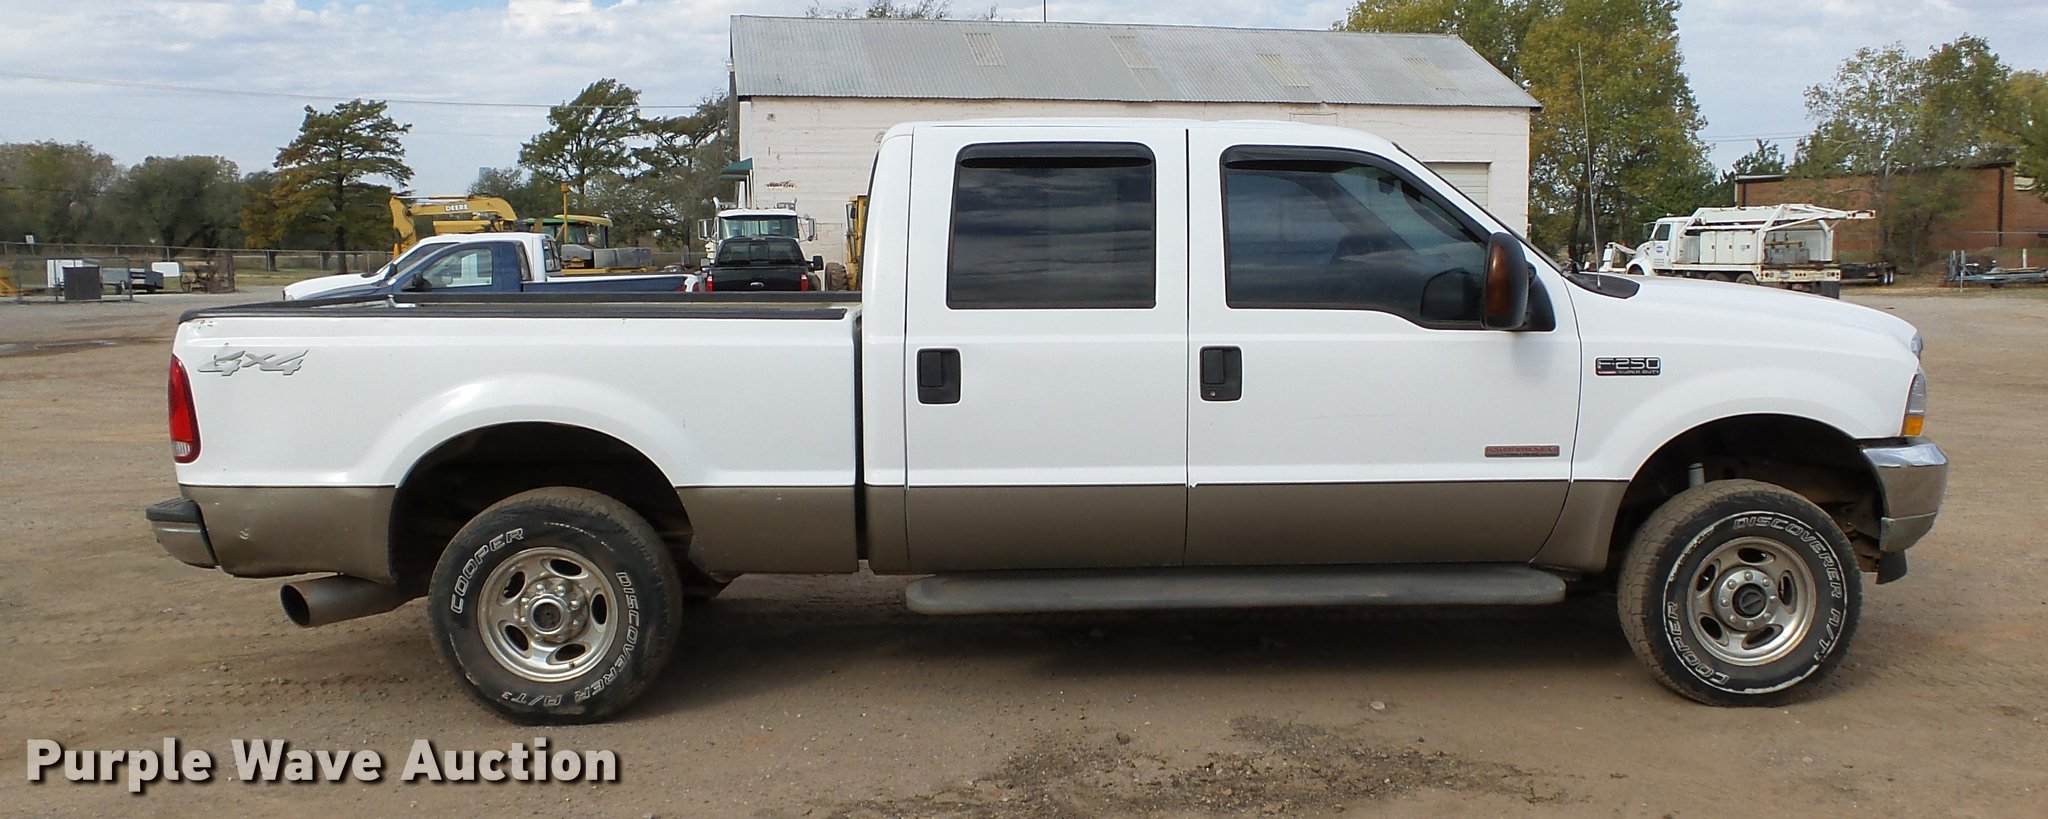 2004 Ford F250 Super Duty Lariat Crew Cab Pickup Truck Ite F 250 Mirror Cover Full Size In New Window